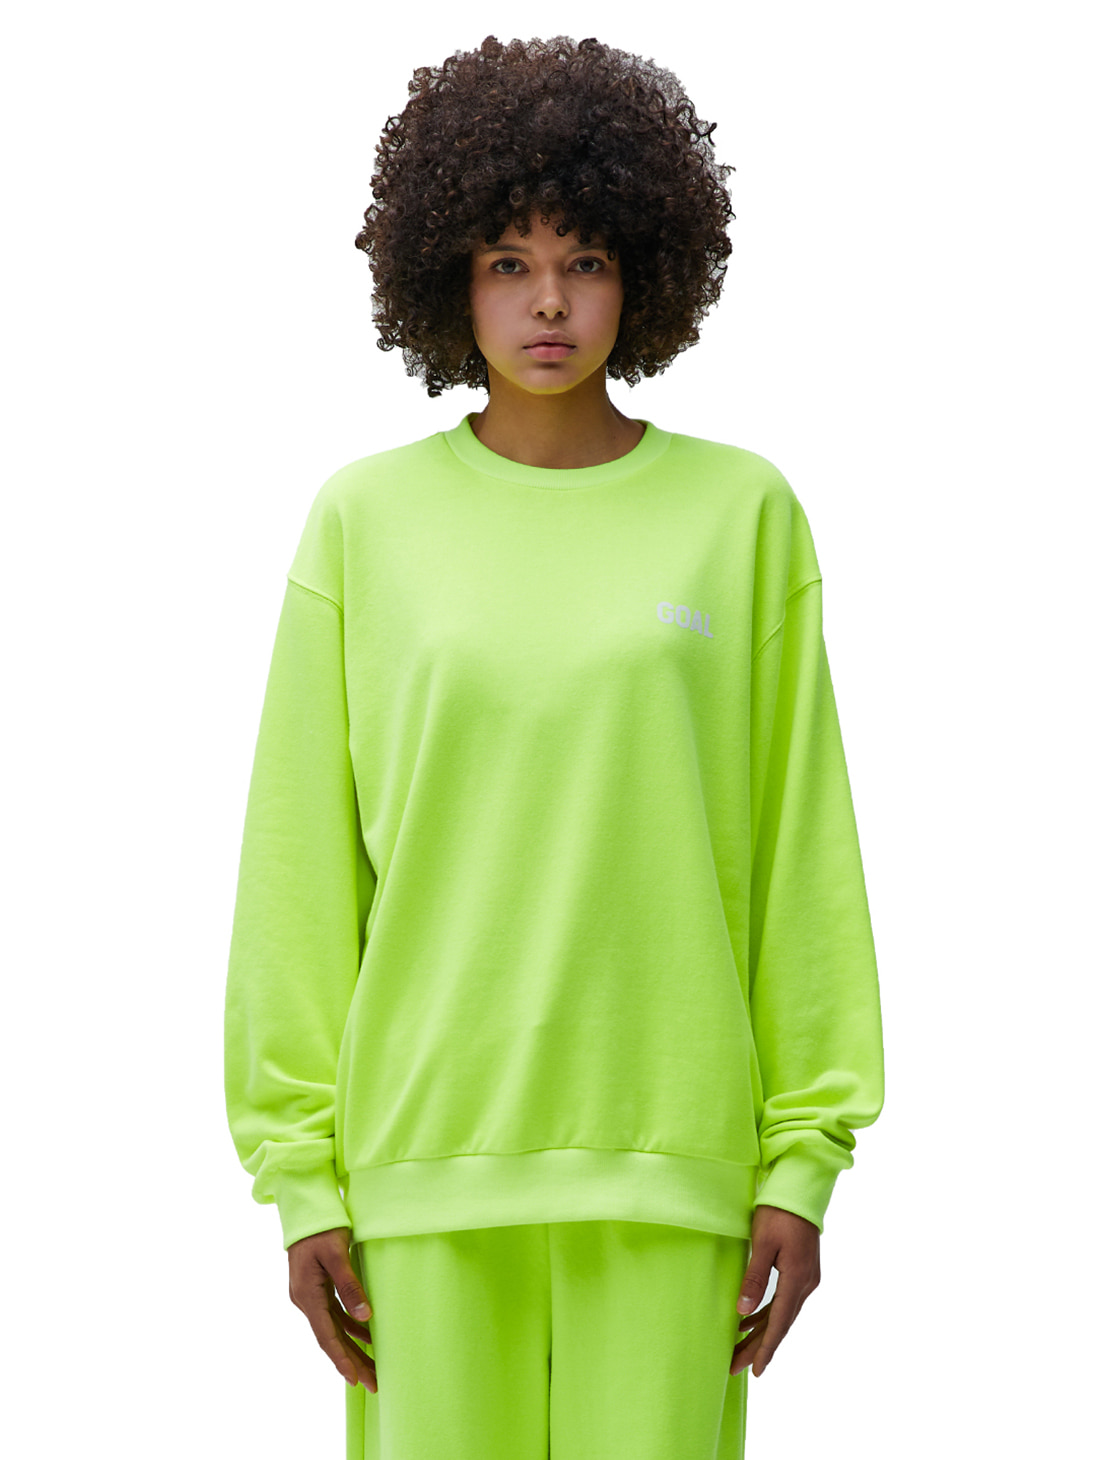 GOALSTUDIO FLOCKING SWEATSHIRT - LIME YELLOW